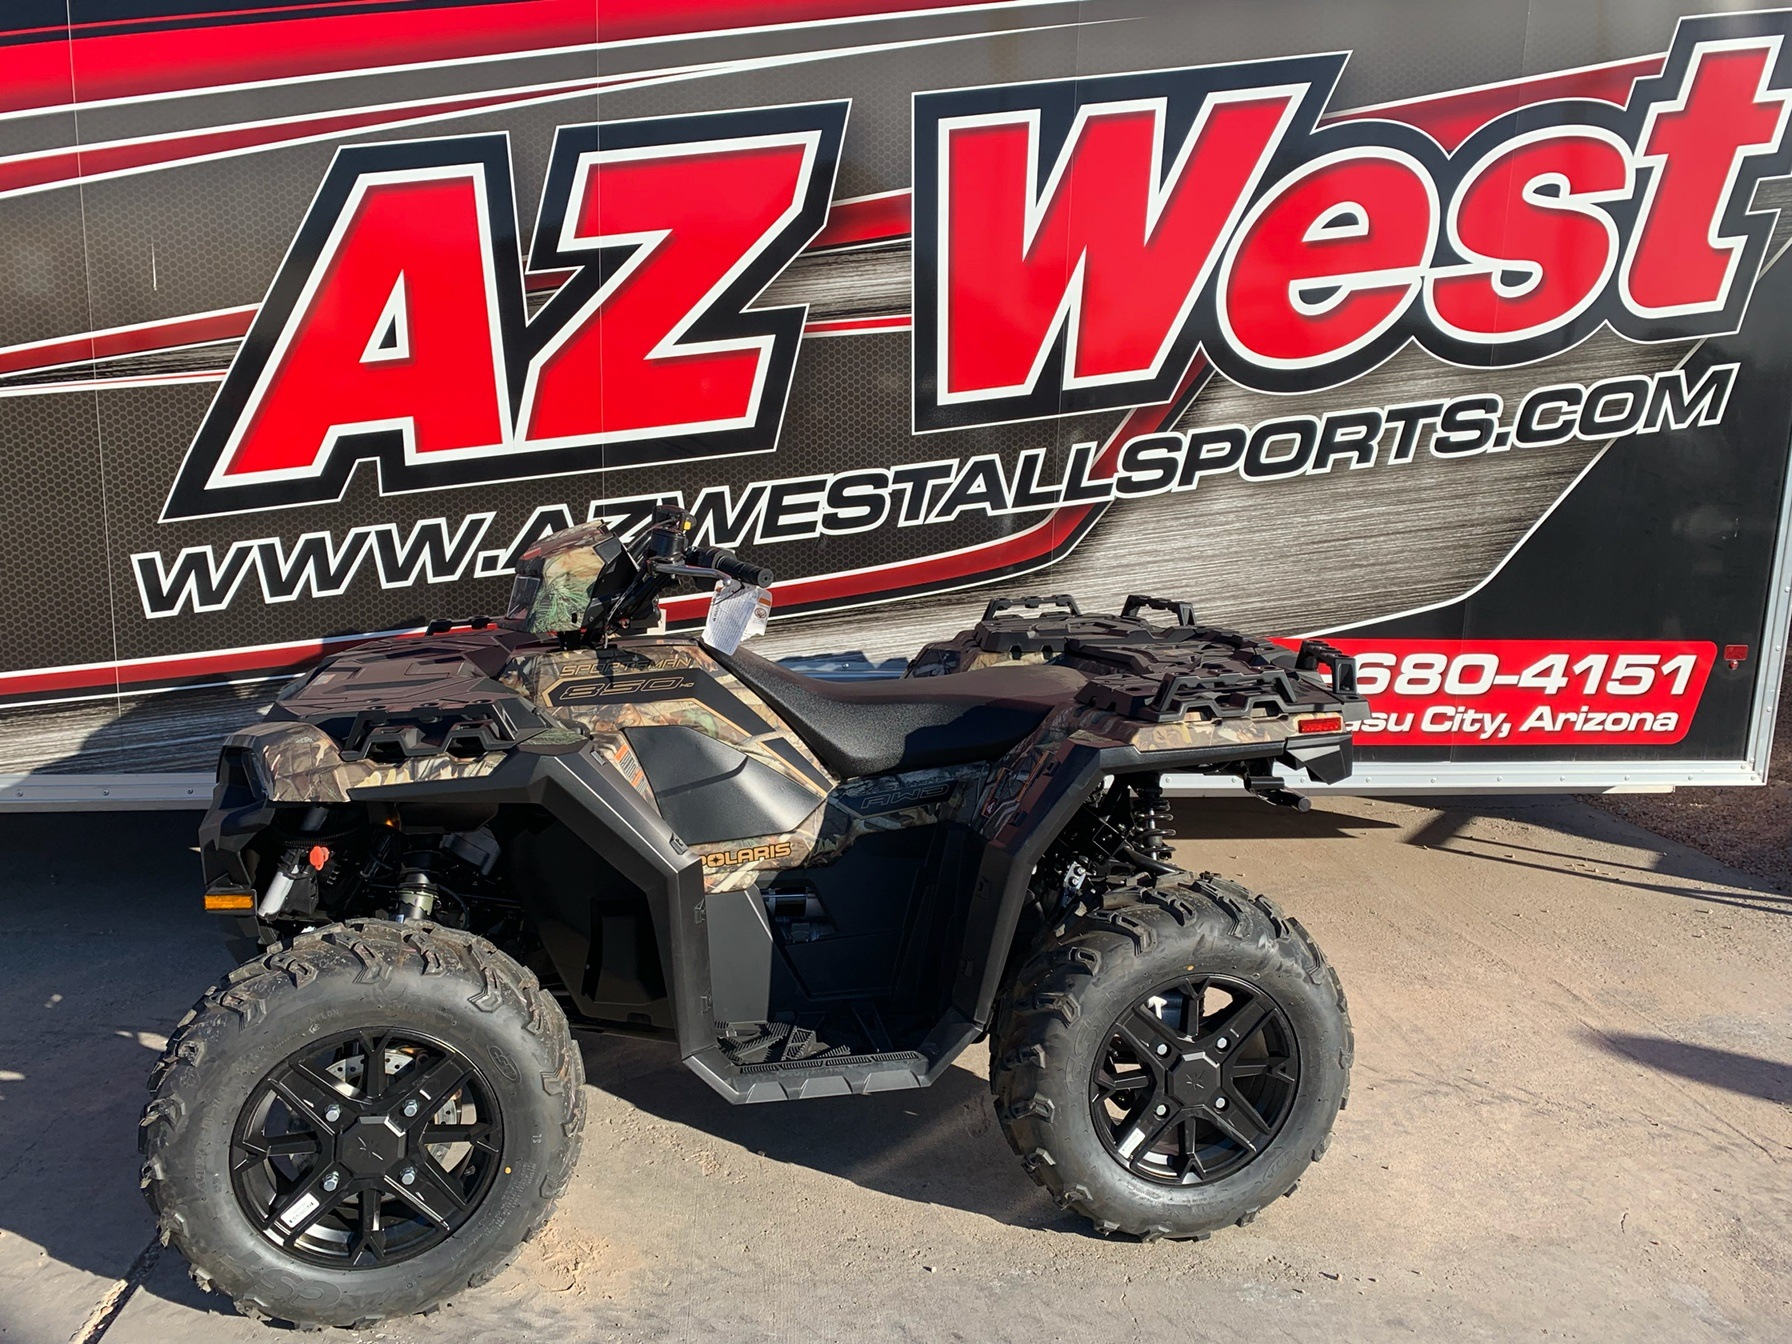 2020 Polaris Sportsman 850 Premium in Lake Havasu City, Arizona - Photo 1